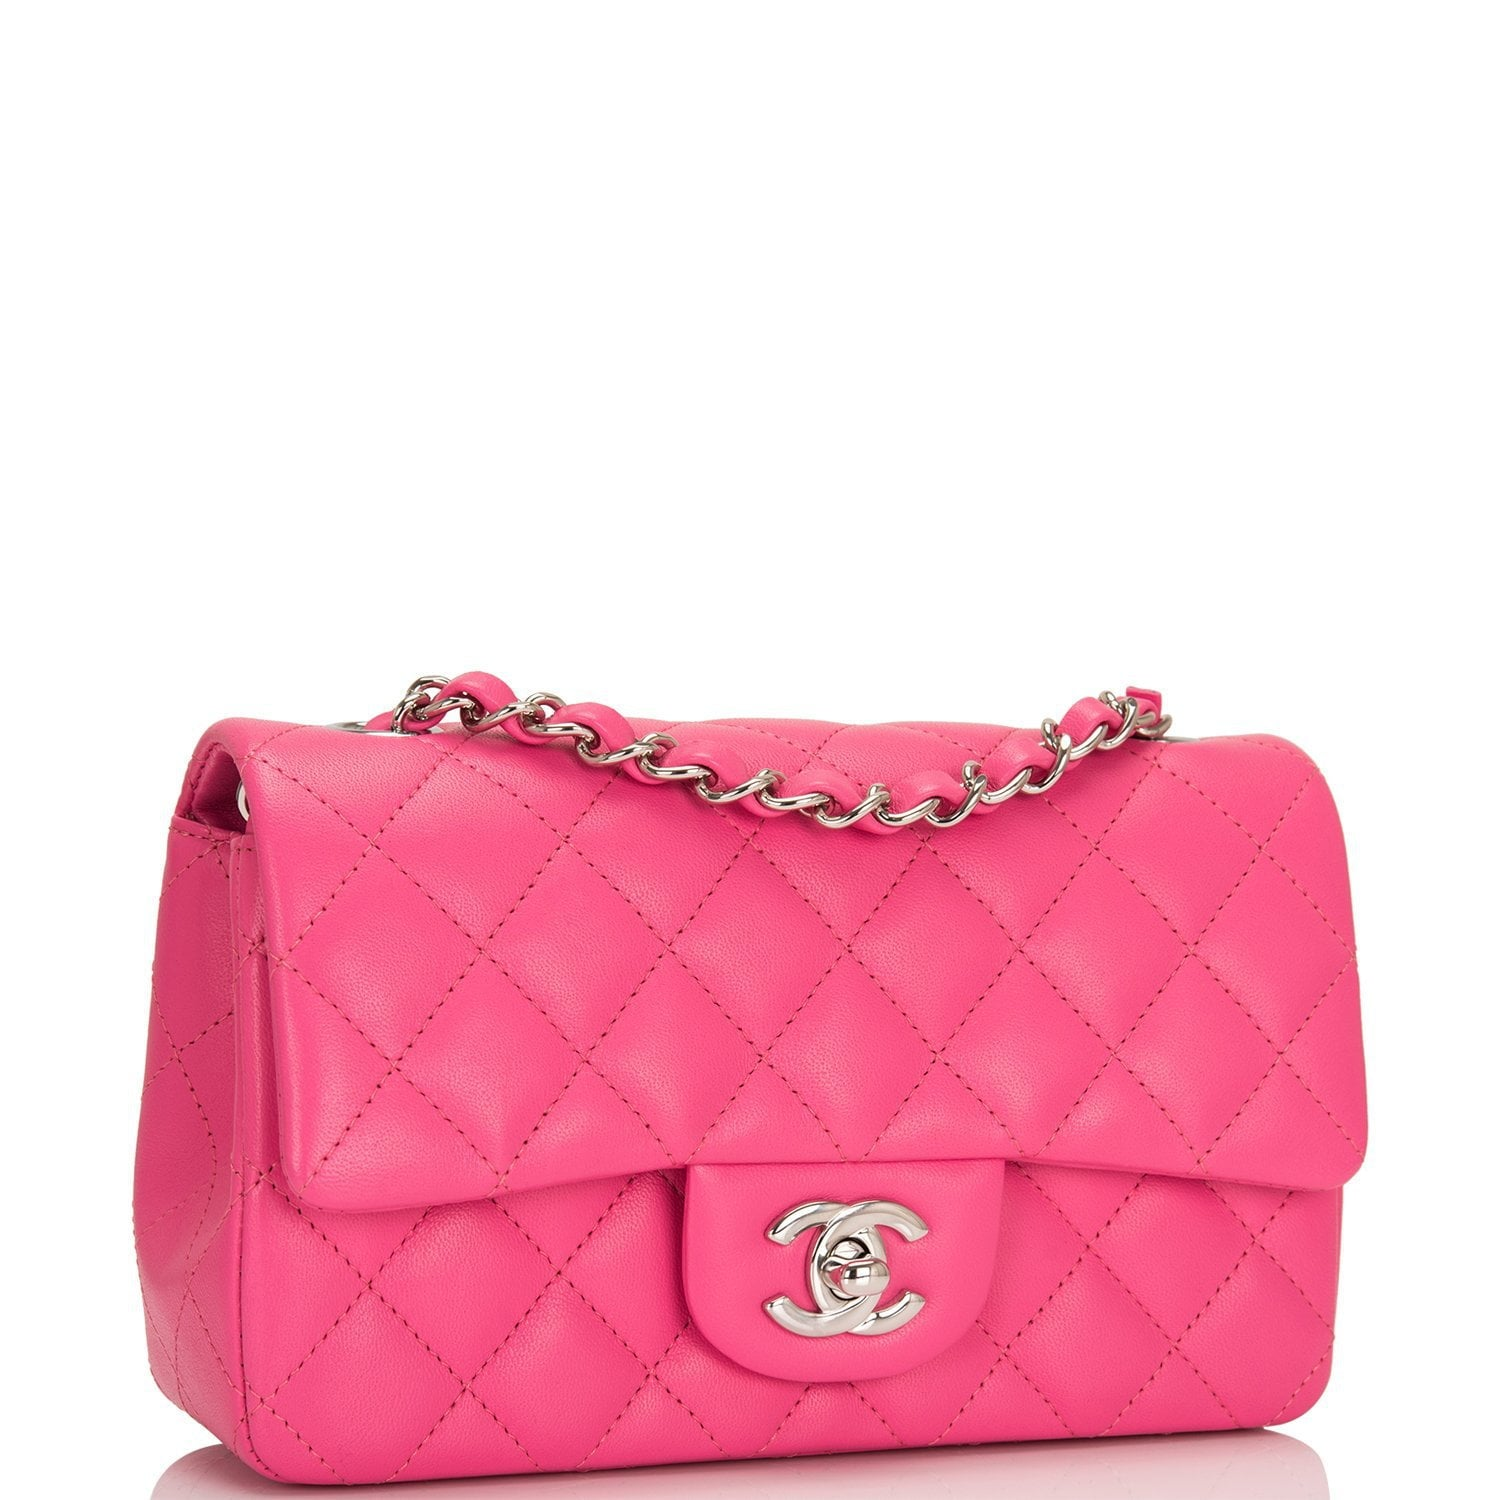 4311dc3e5319 Chanel Pink Quilted Lambskin Rectangular Mini Classic Flap Bag – Madison  Avenue Couture